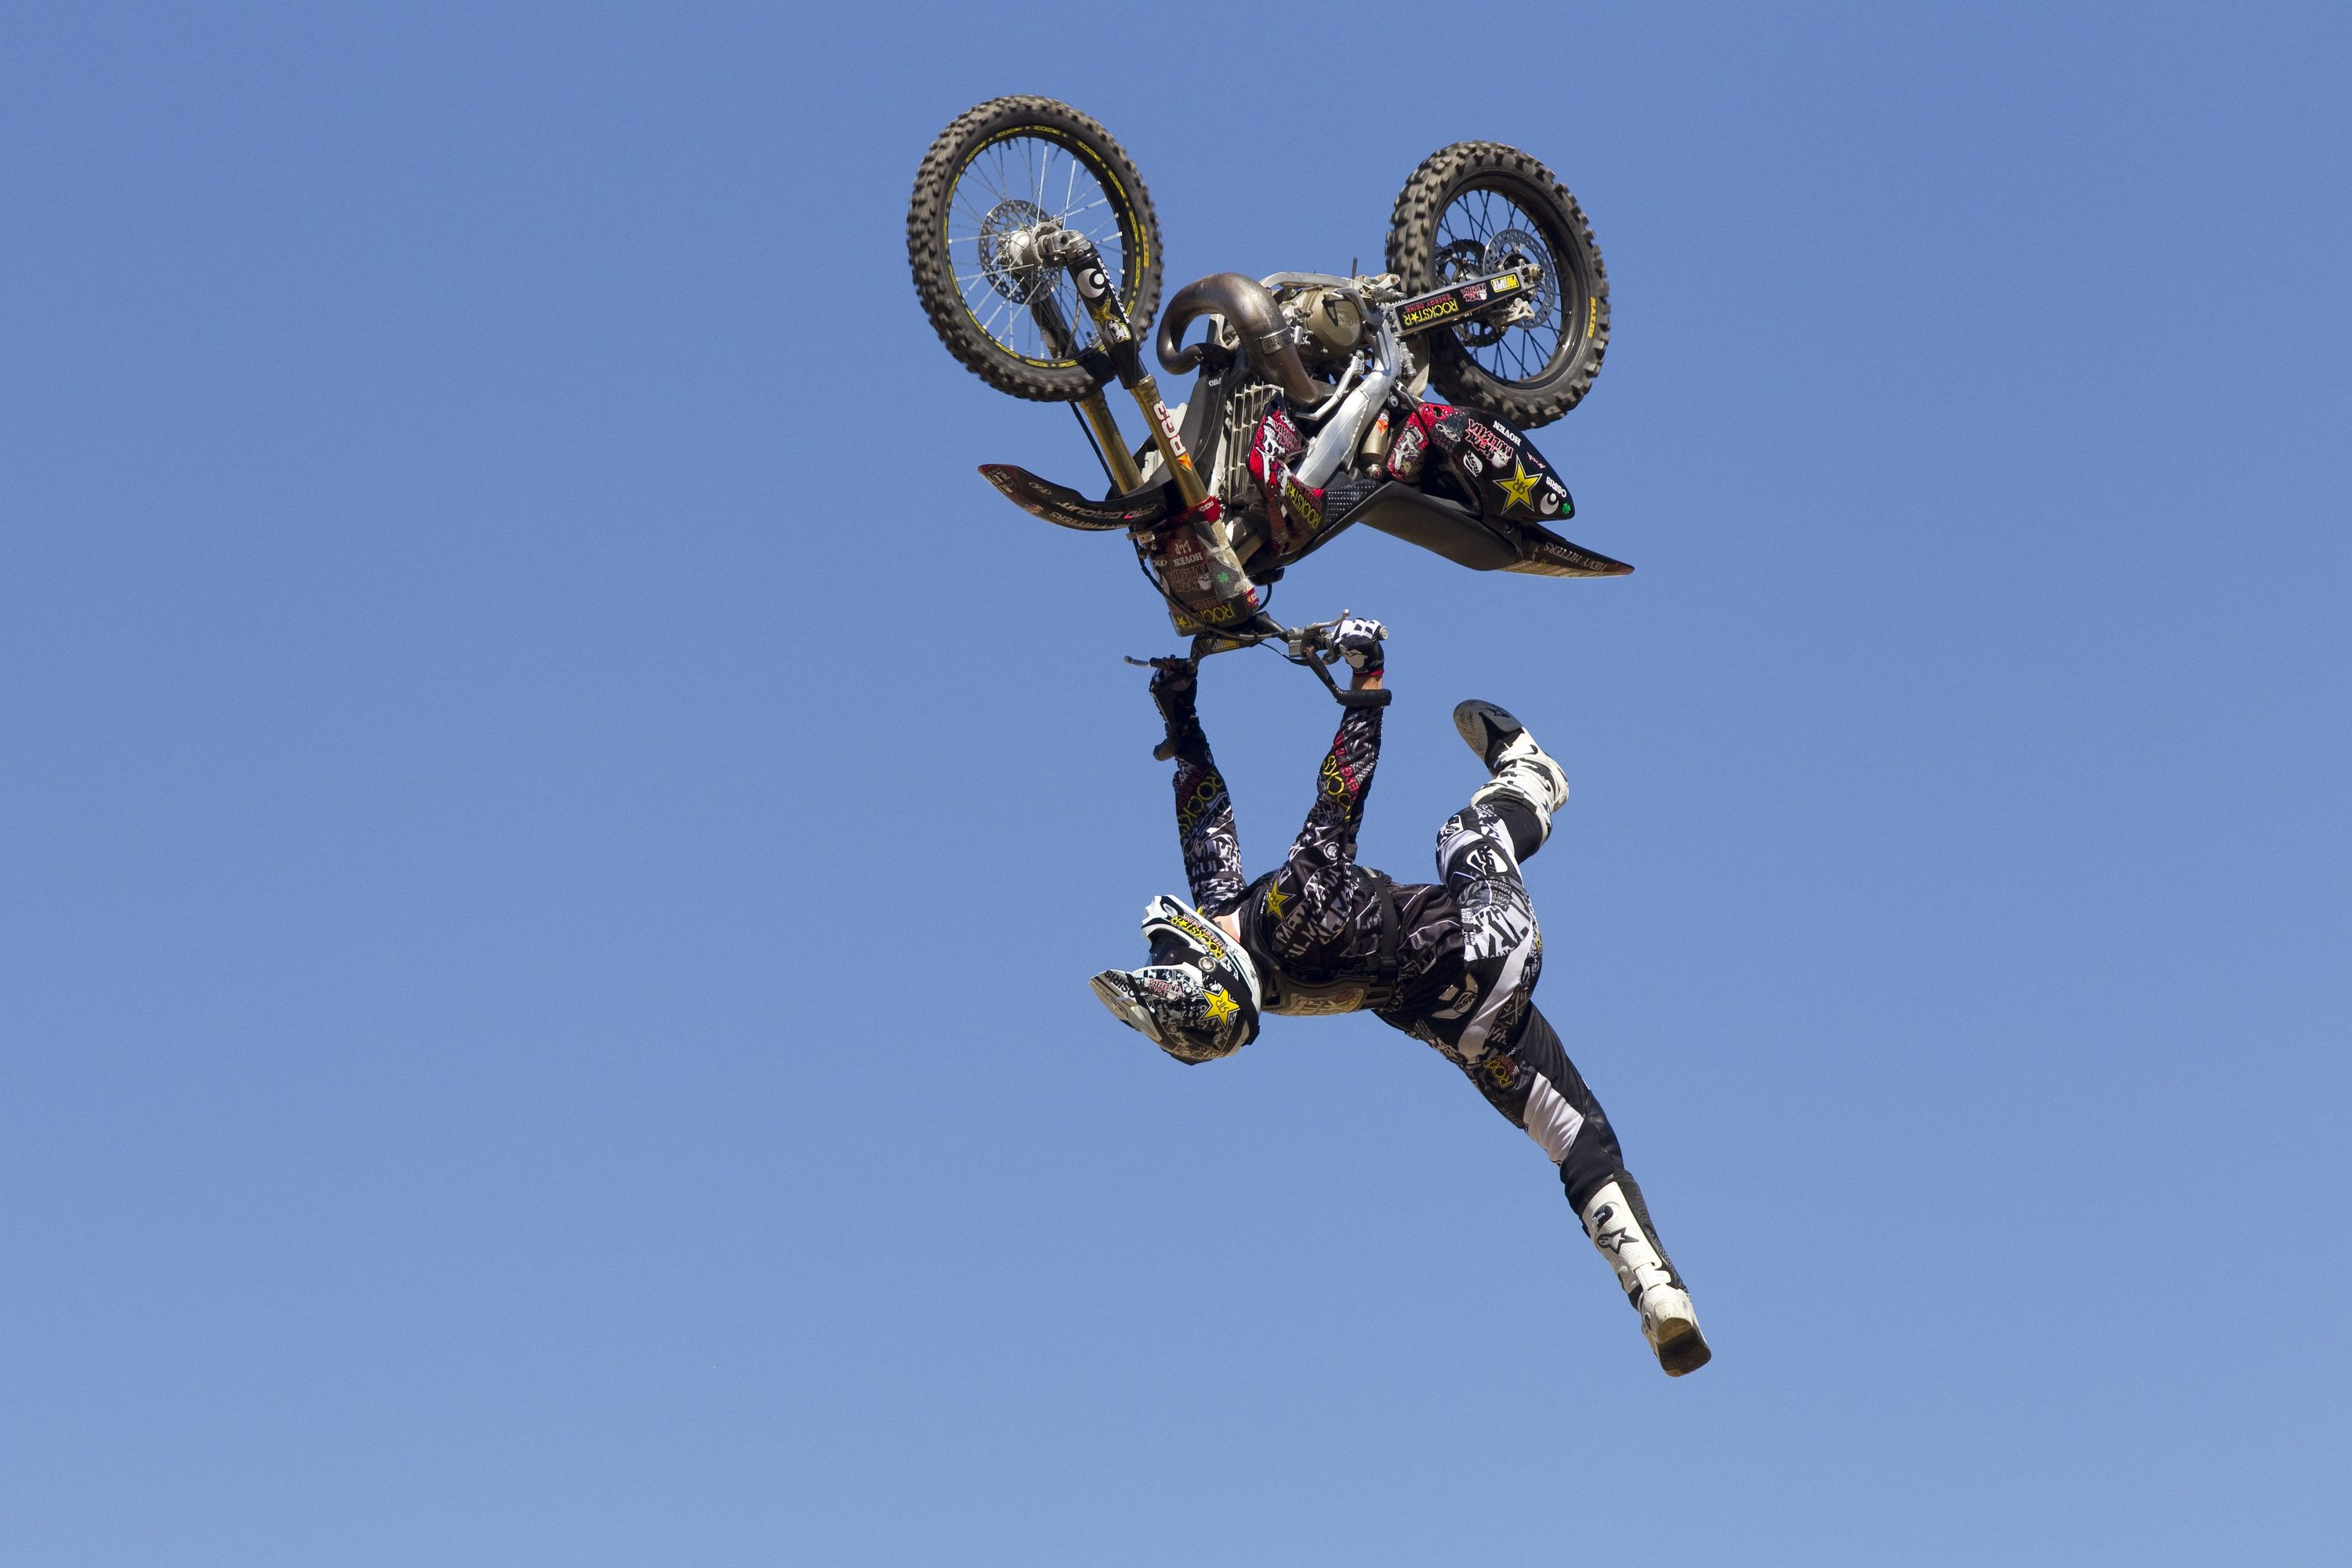 Freestyle motocross freestyle motocross tricks wallpaper x games freestyle motocross voltagebd Image collections